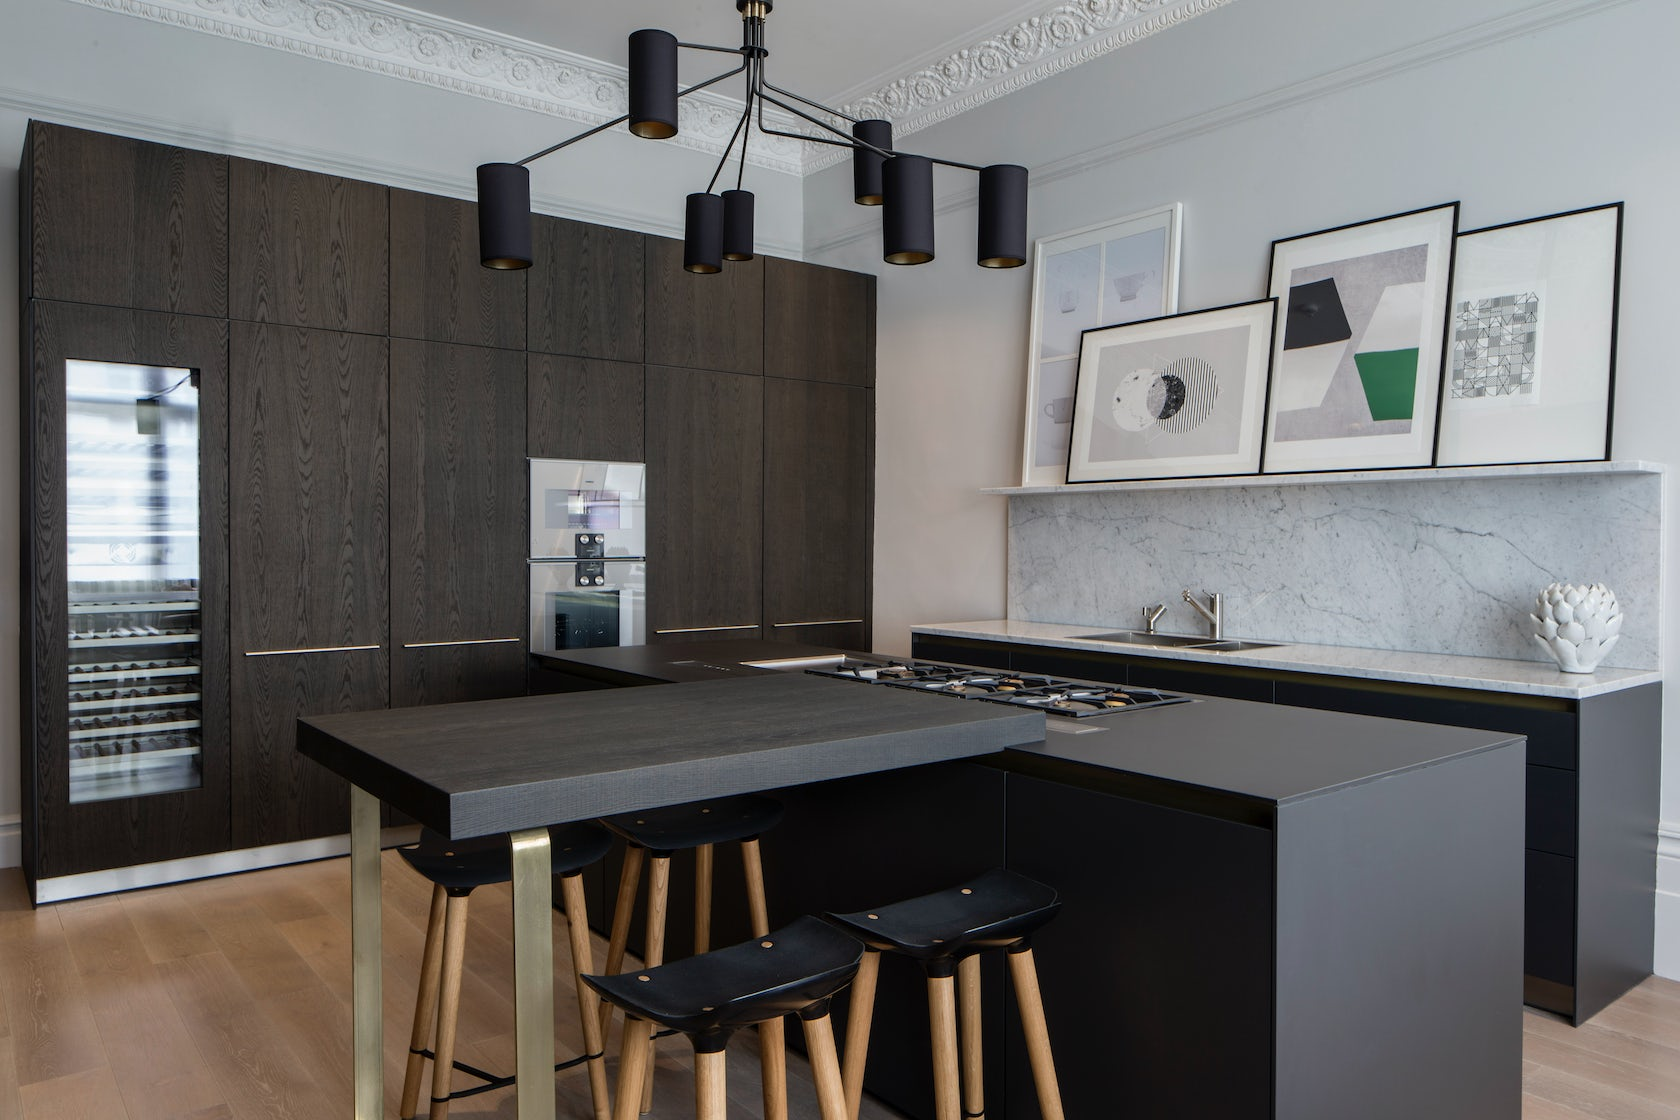 Bespoke bulthaup in north west london apartment on architizer